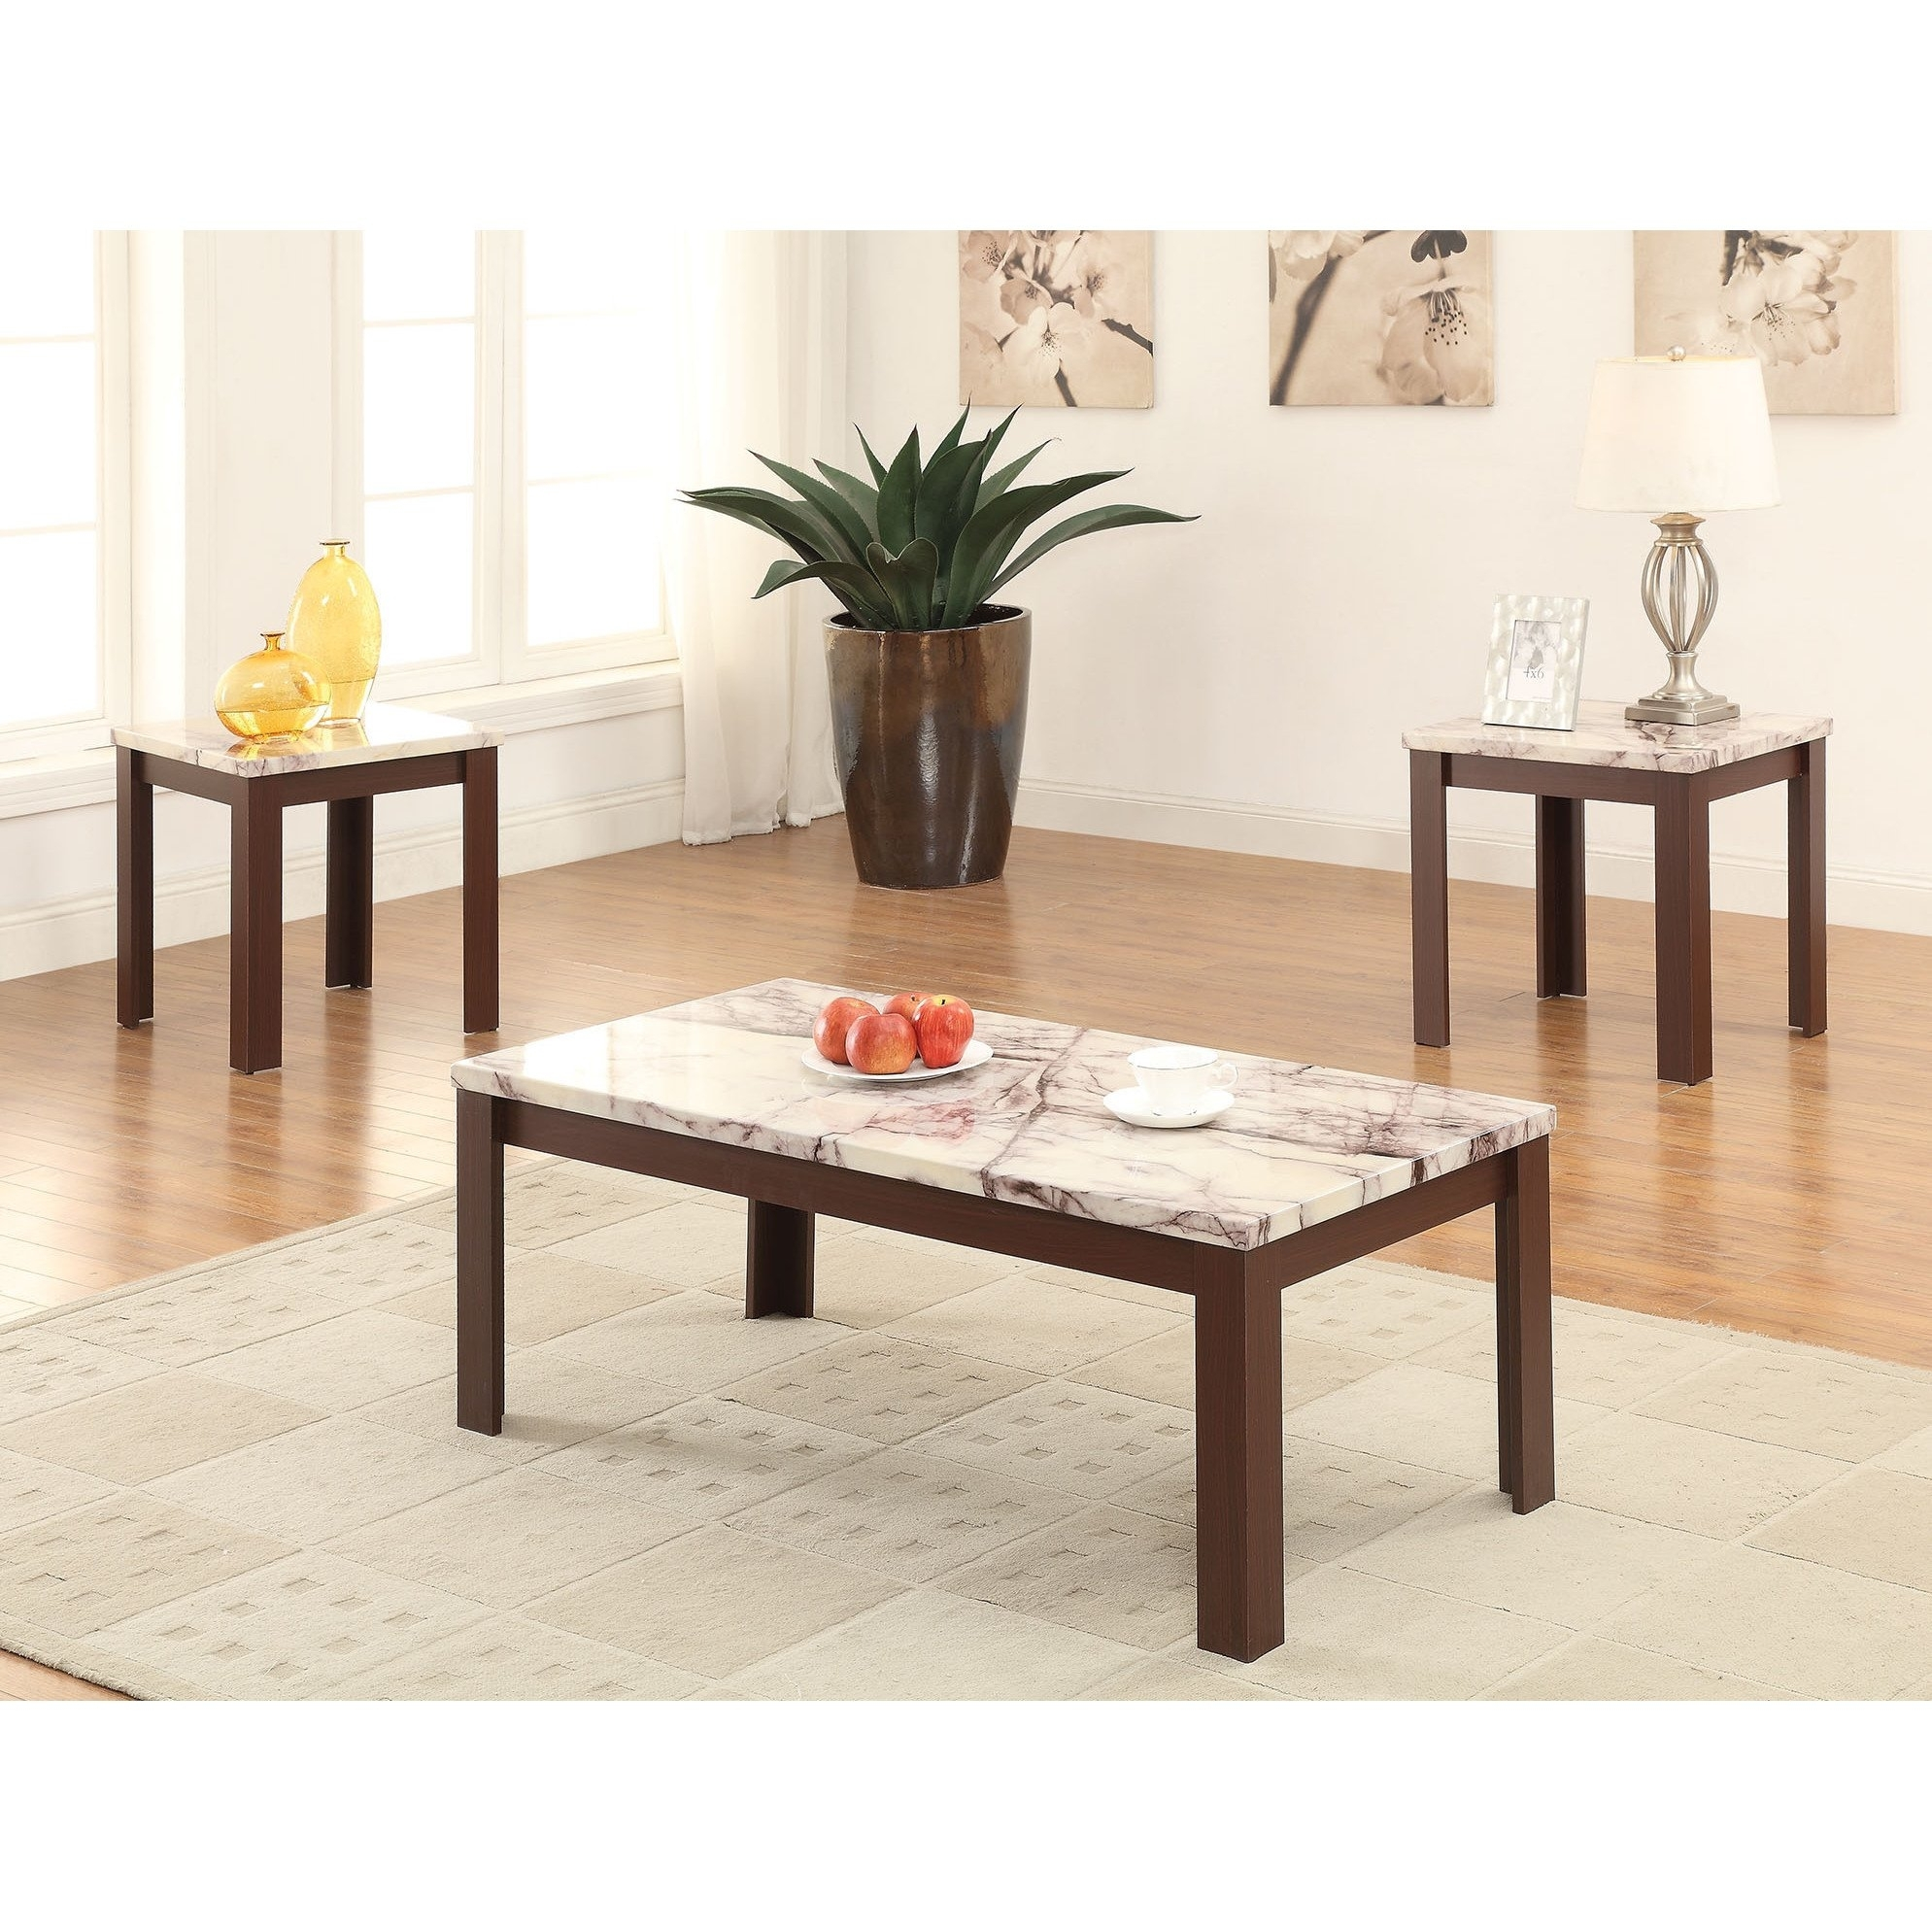 Shop Carly Cherry Faux Marble Veneer/mdf Coffee/end Table 3 Piece With 2018 Carly Rectangle Dining Tables (Image 18 of 20)